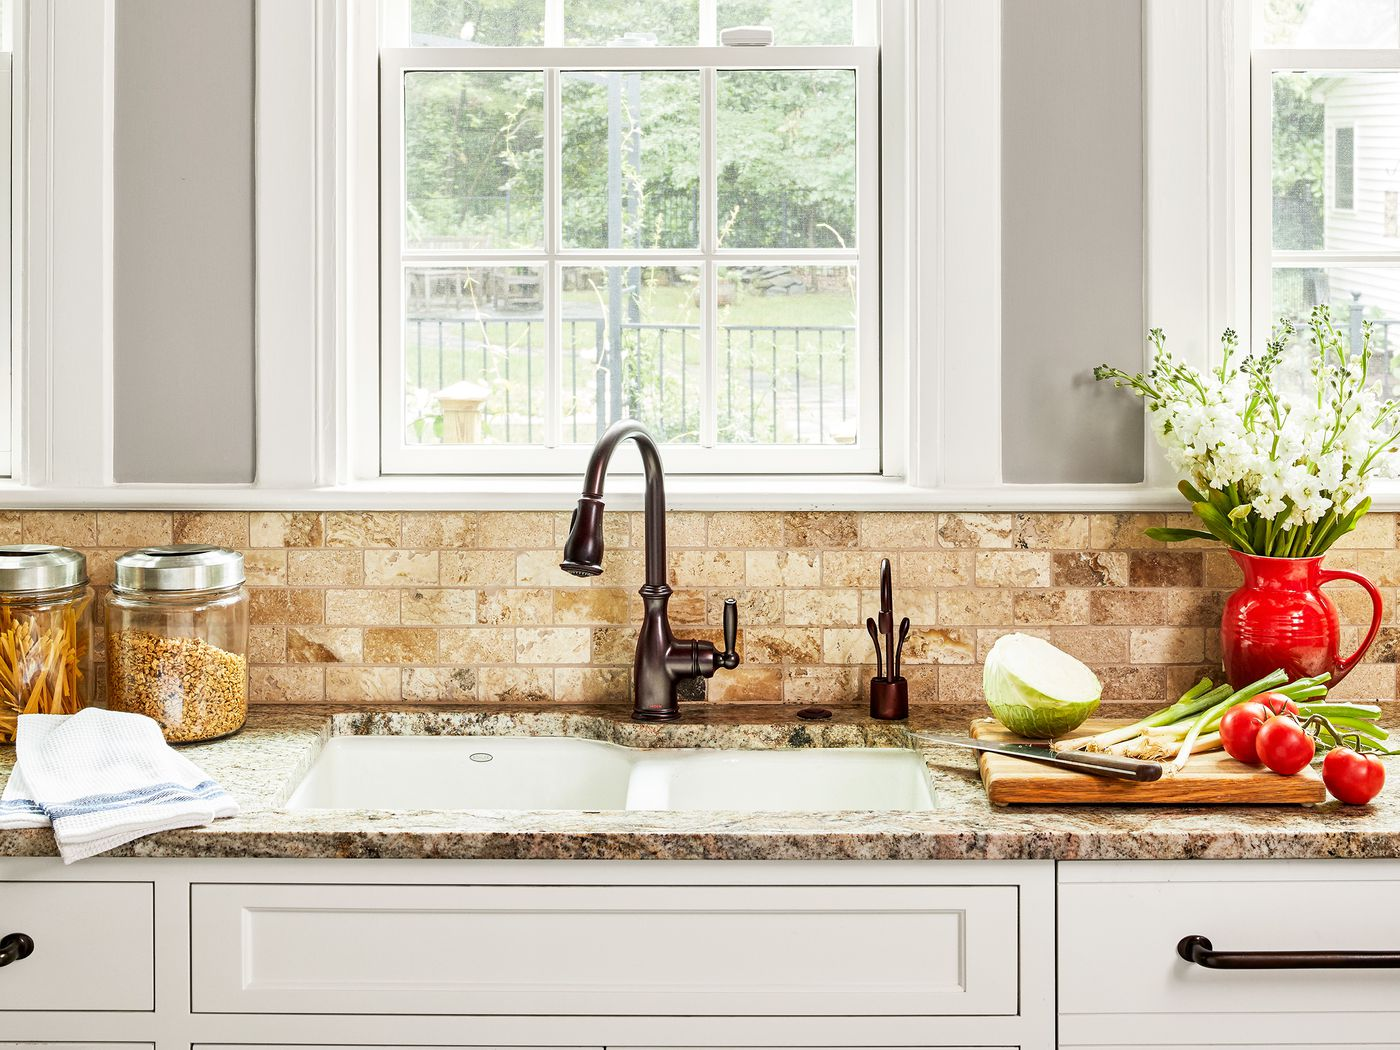 - What Are The Best Backsplash Materials For Your Kitchen? - This